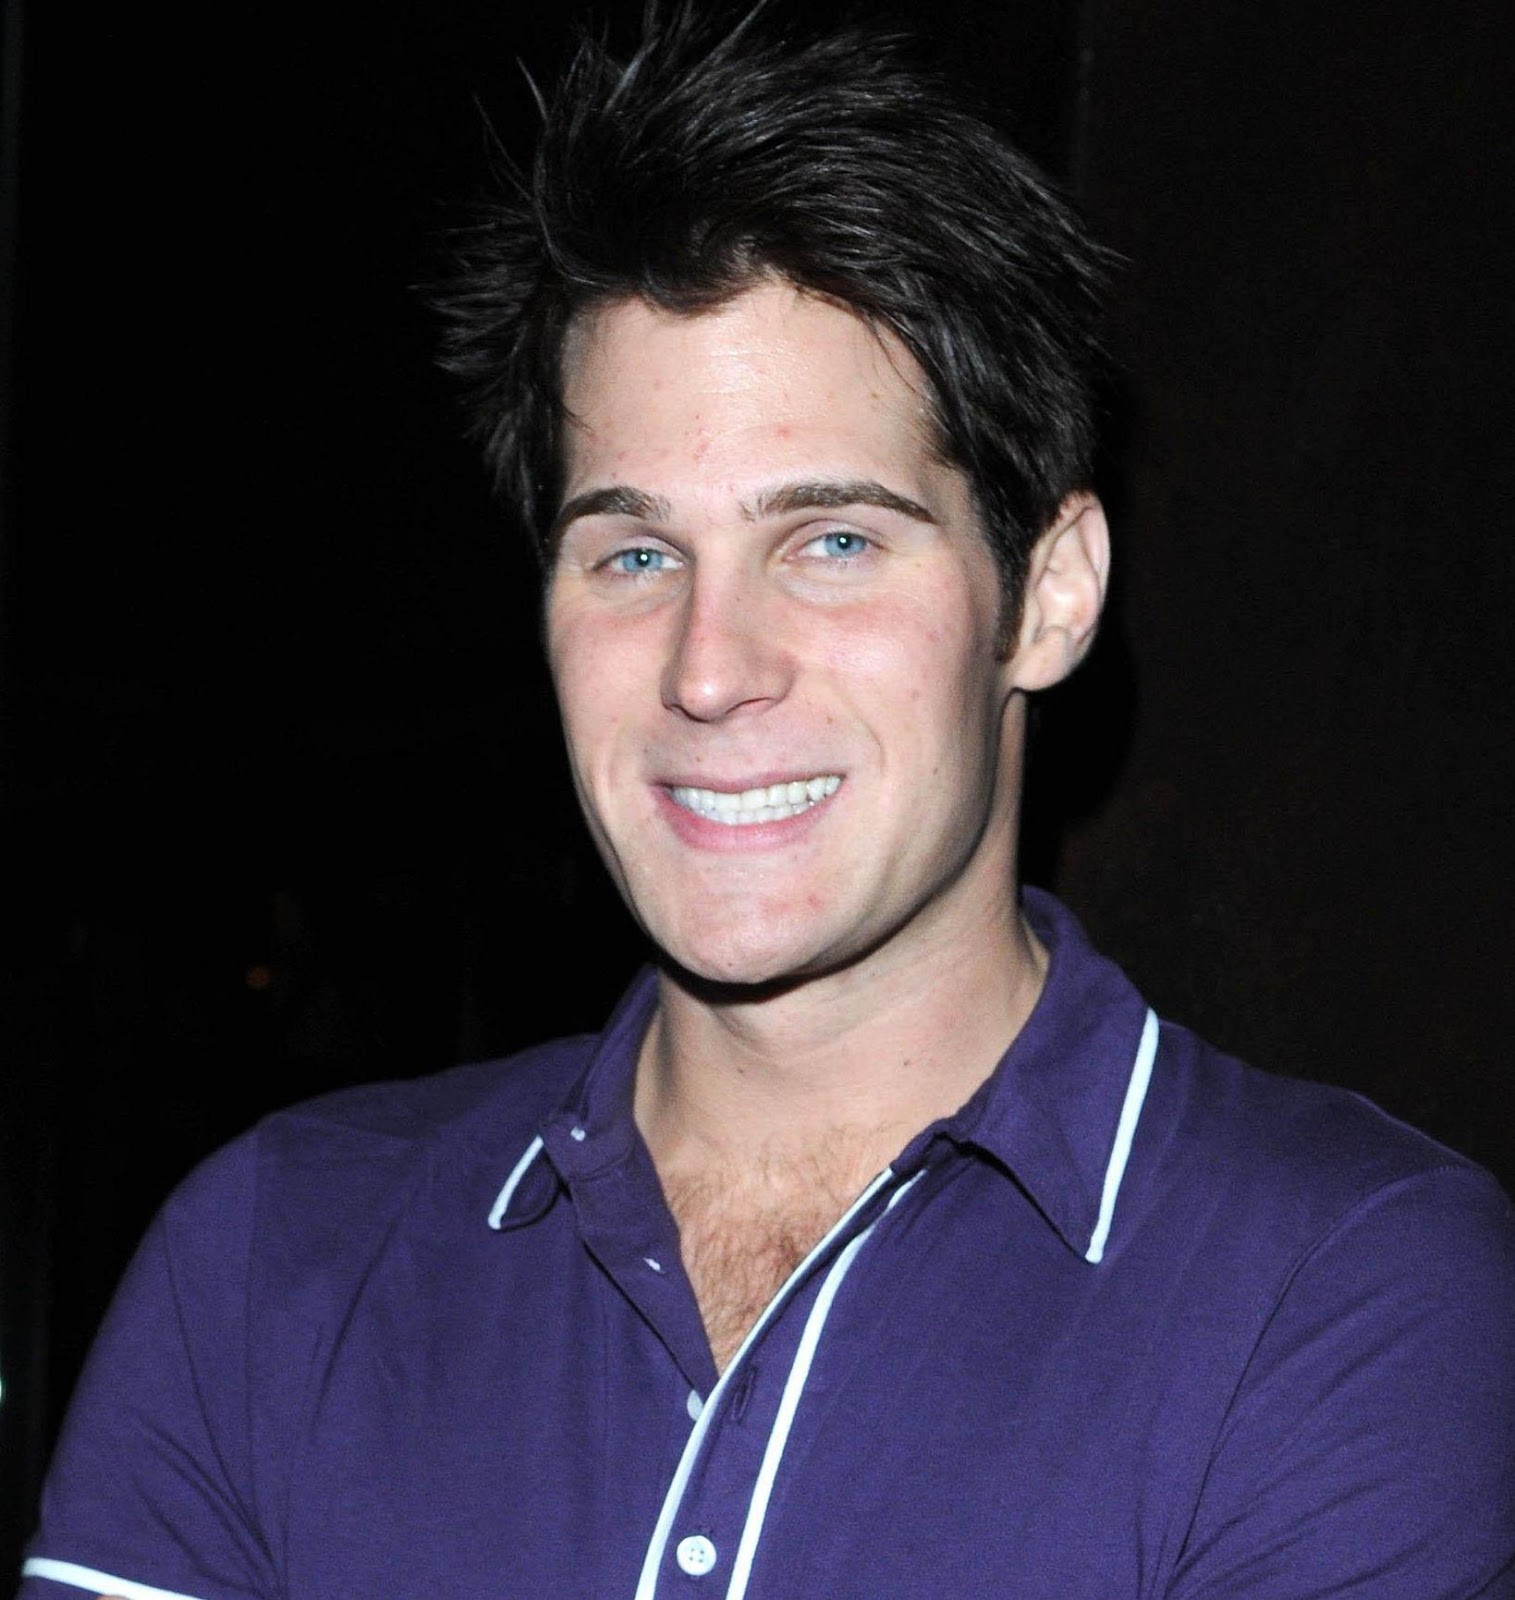 Basshunter Hairstyle Men Hairstyles Men Hair Styles Collection